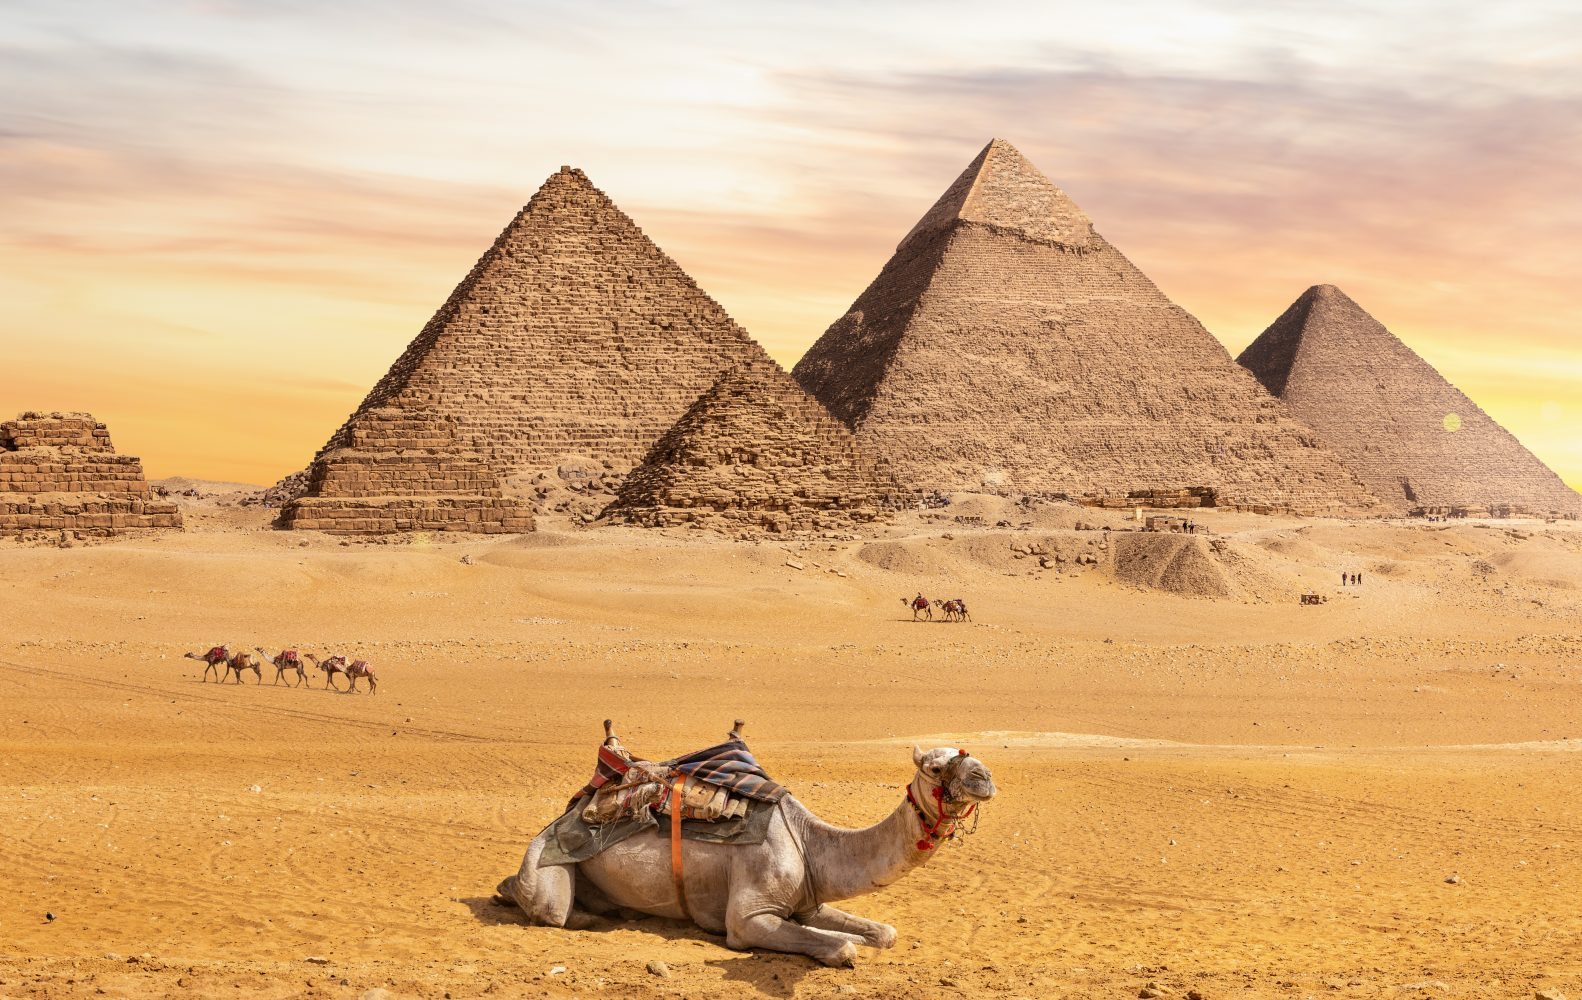 The,Great,Pyramids,,One,Of,The,Wonders,Of,The,World,